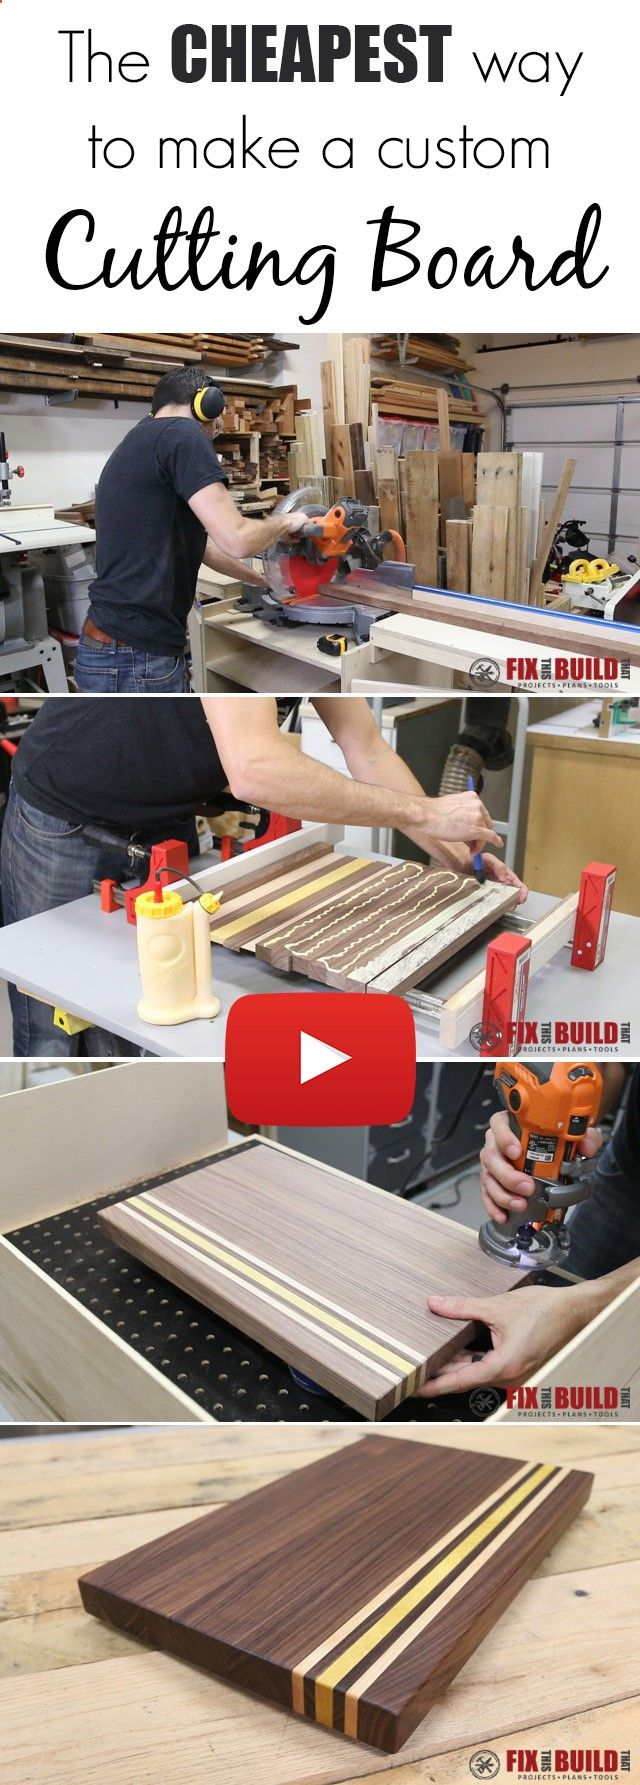 Learn how to make a custom cutting board with scrap offcuts and leftover wood! Full video tutorial.